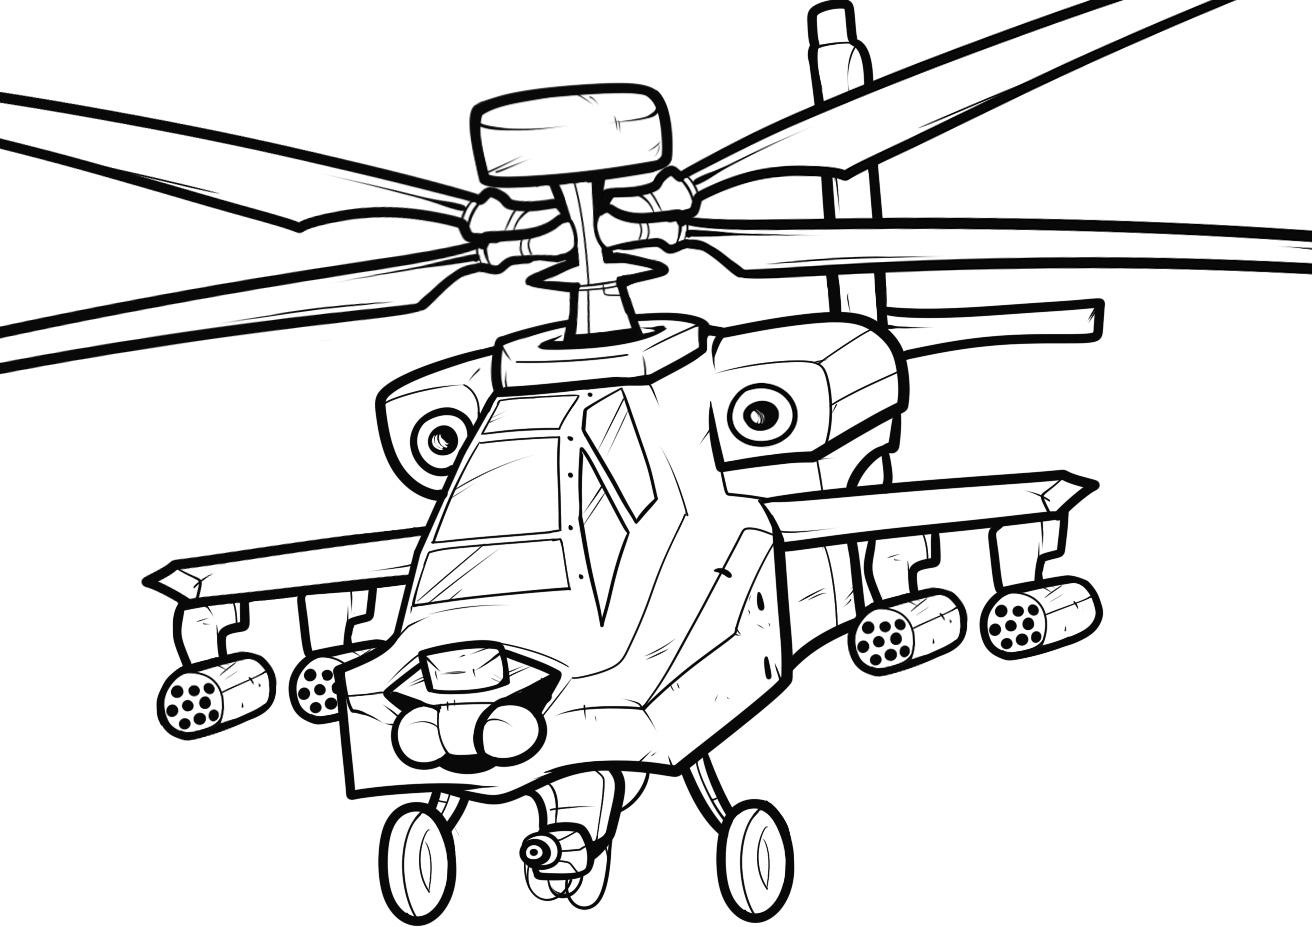 helicopter colouring pictures free printable helicopter coloring pages for kids helicopter pictures colouring 1 2